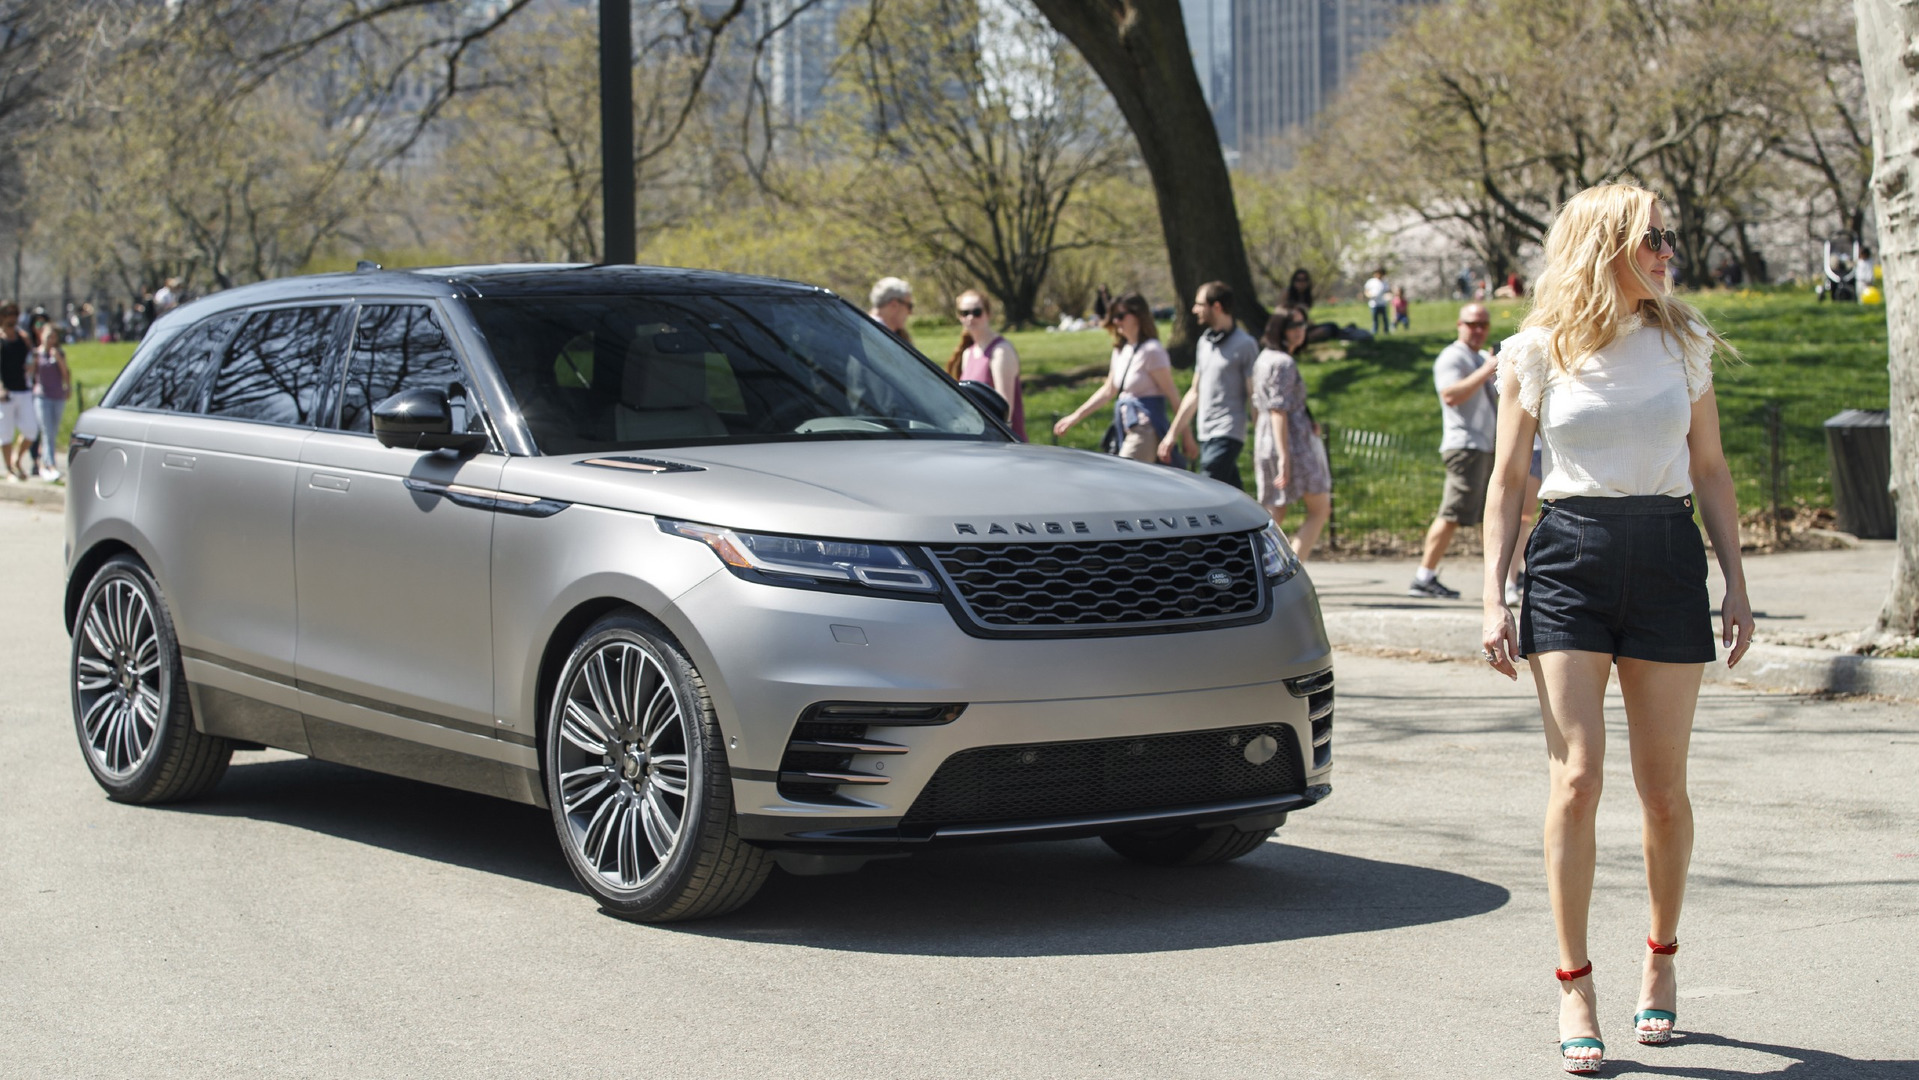 Range Rover Velar Price Usa >> The Most Expensive Land Rover Range Rover Velar Costs 103 265